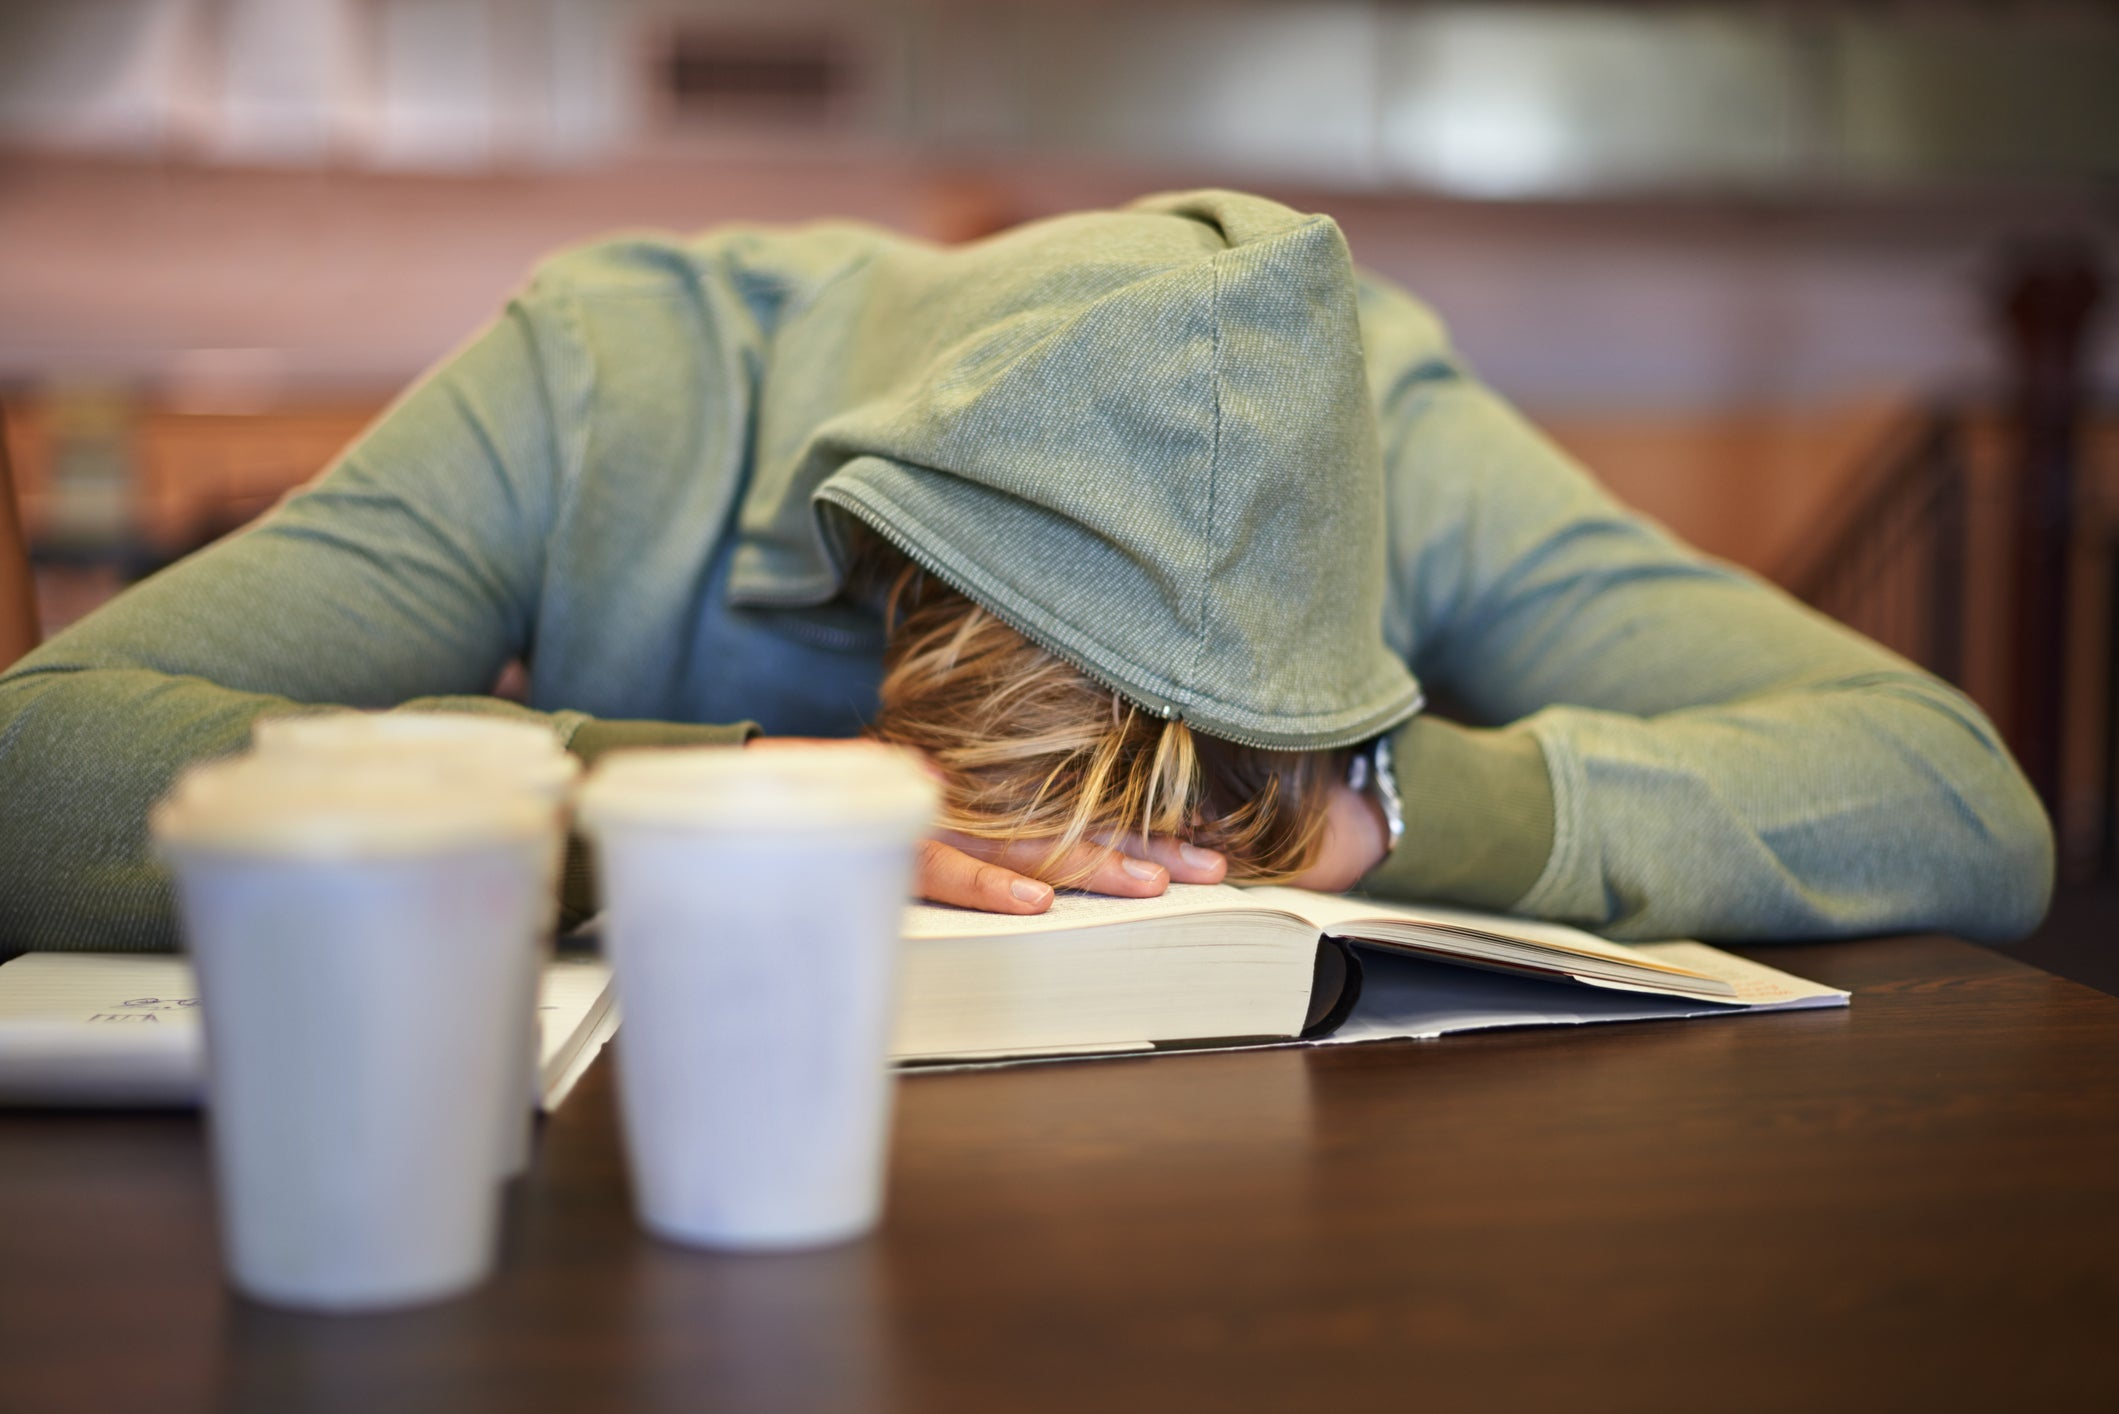 A college student passed out with his head on his textbook.